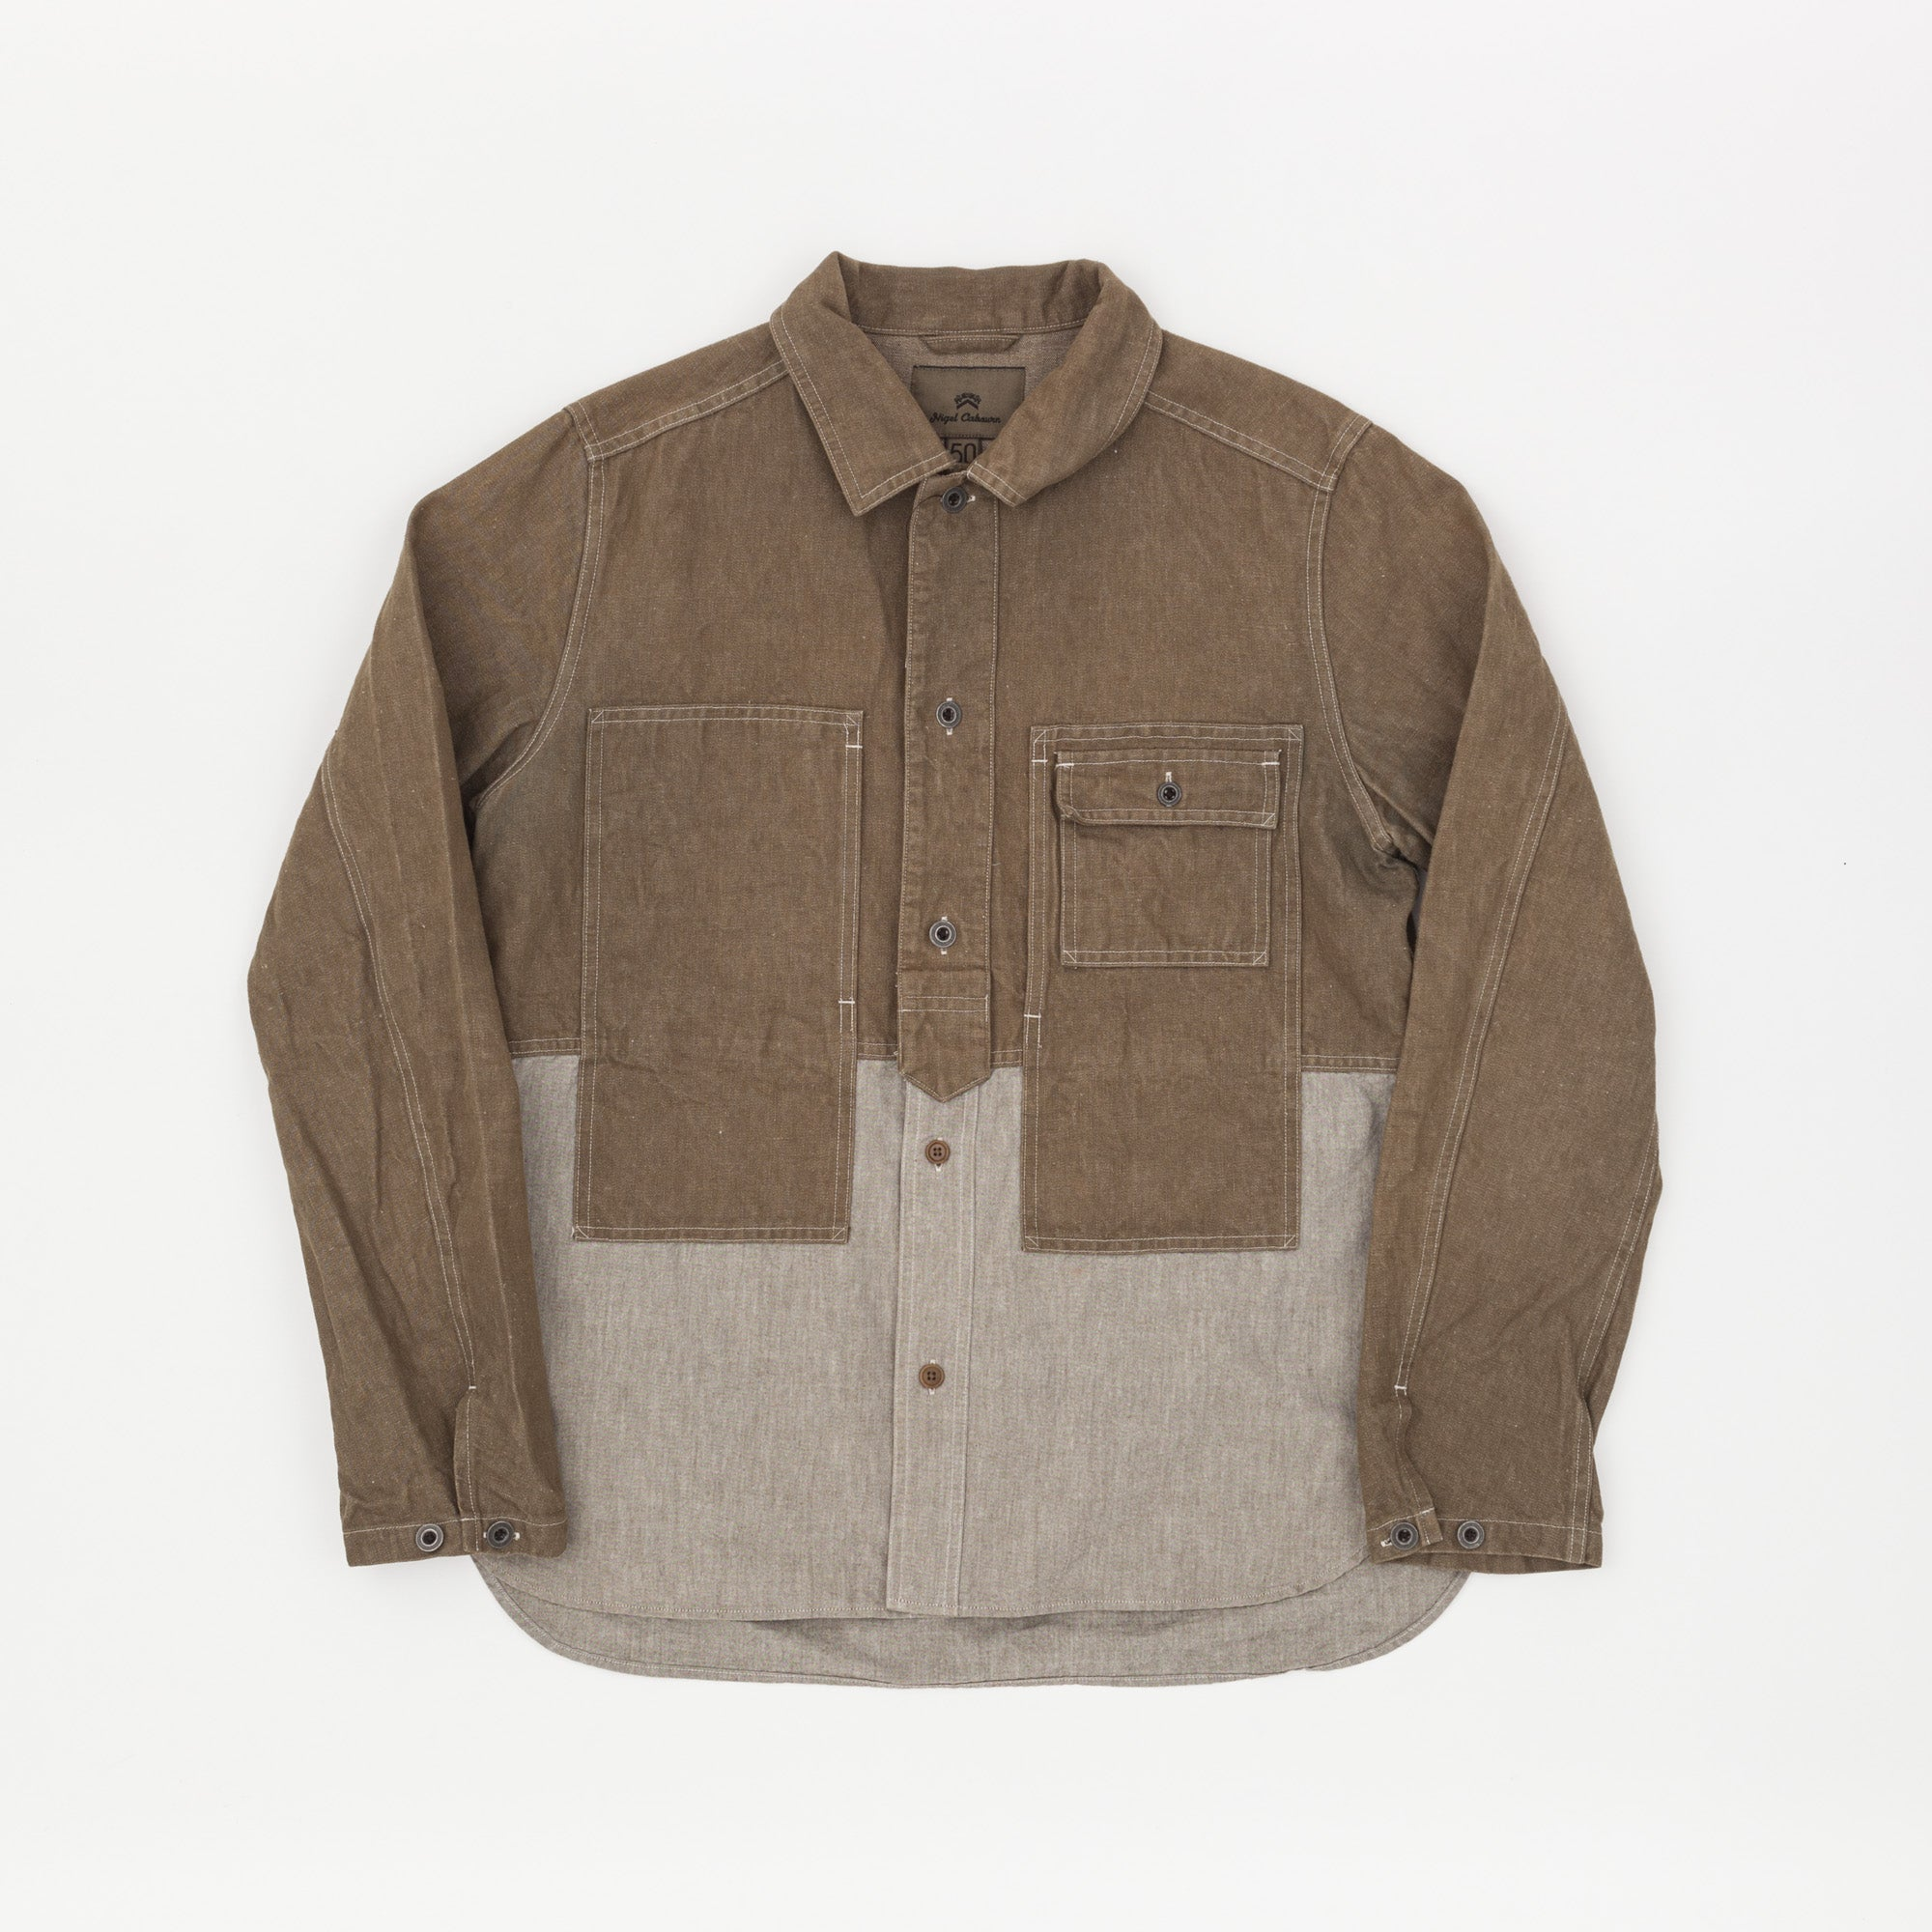 Nigel Cabourn Mainline Two Tone Utility Shirt Jacket